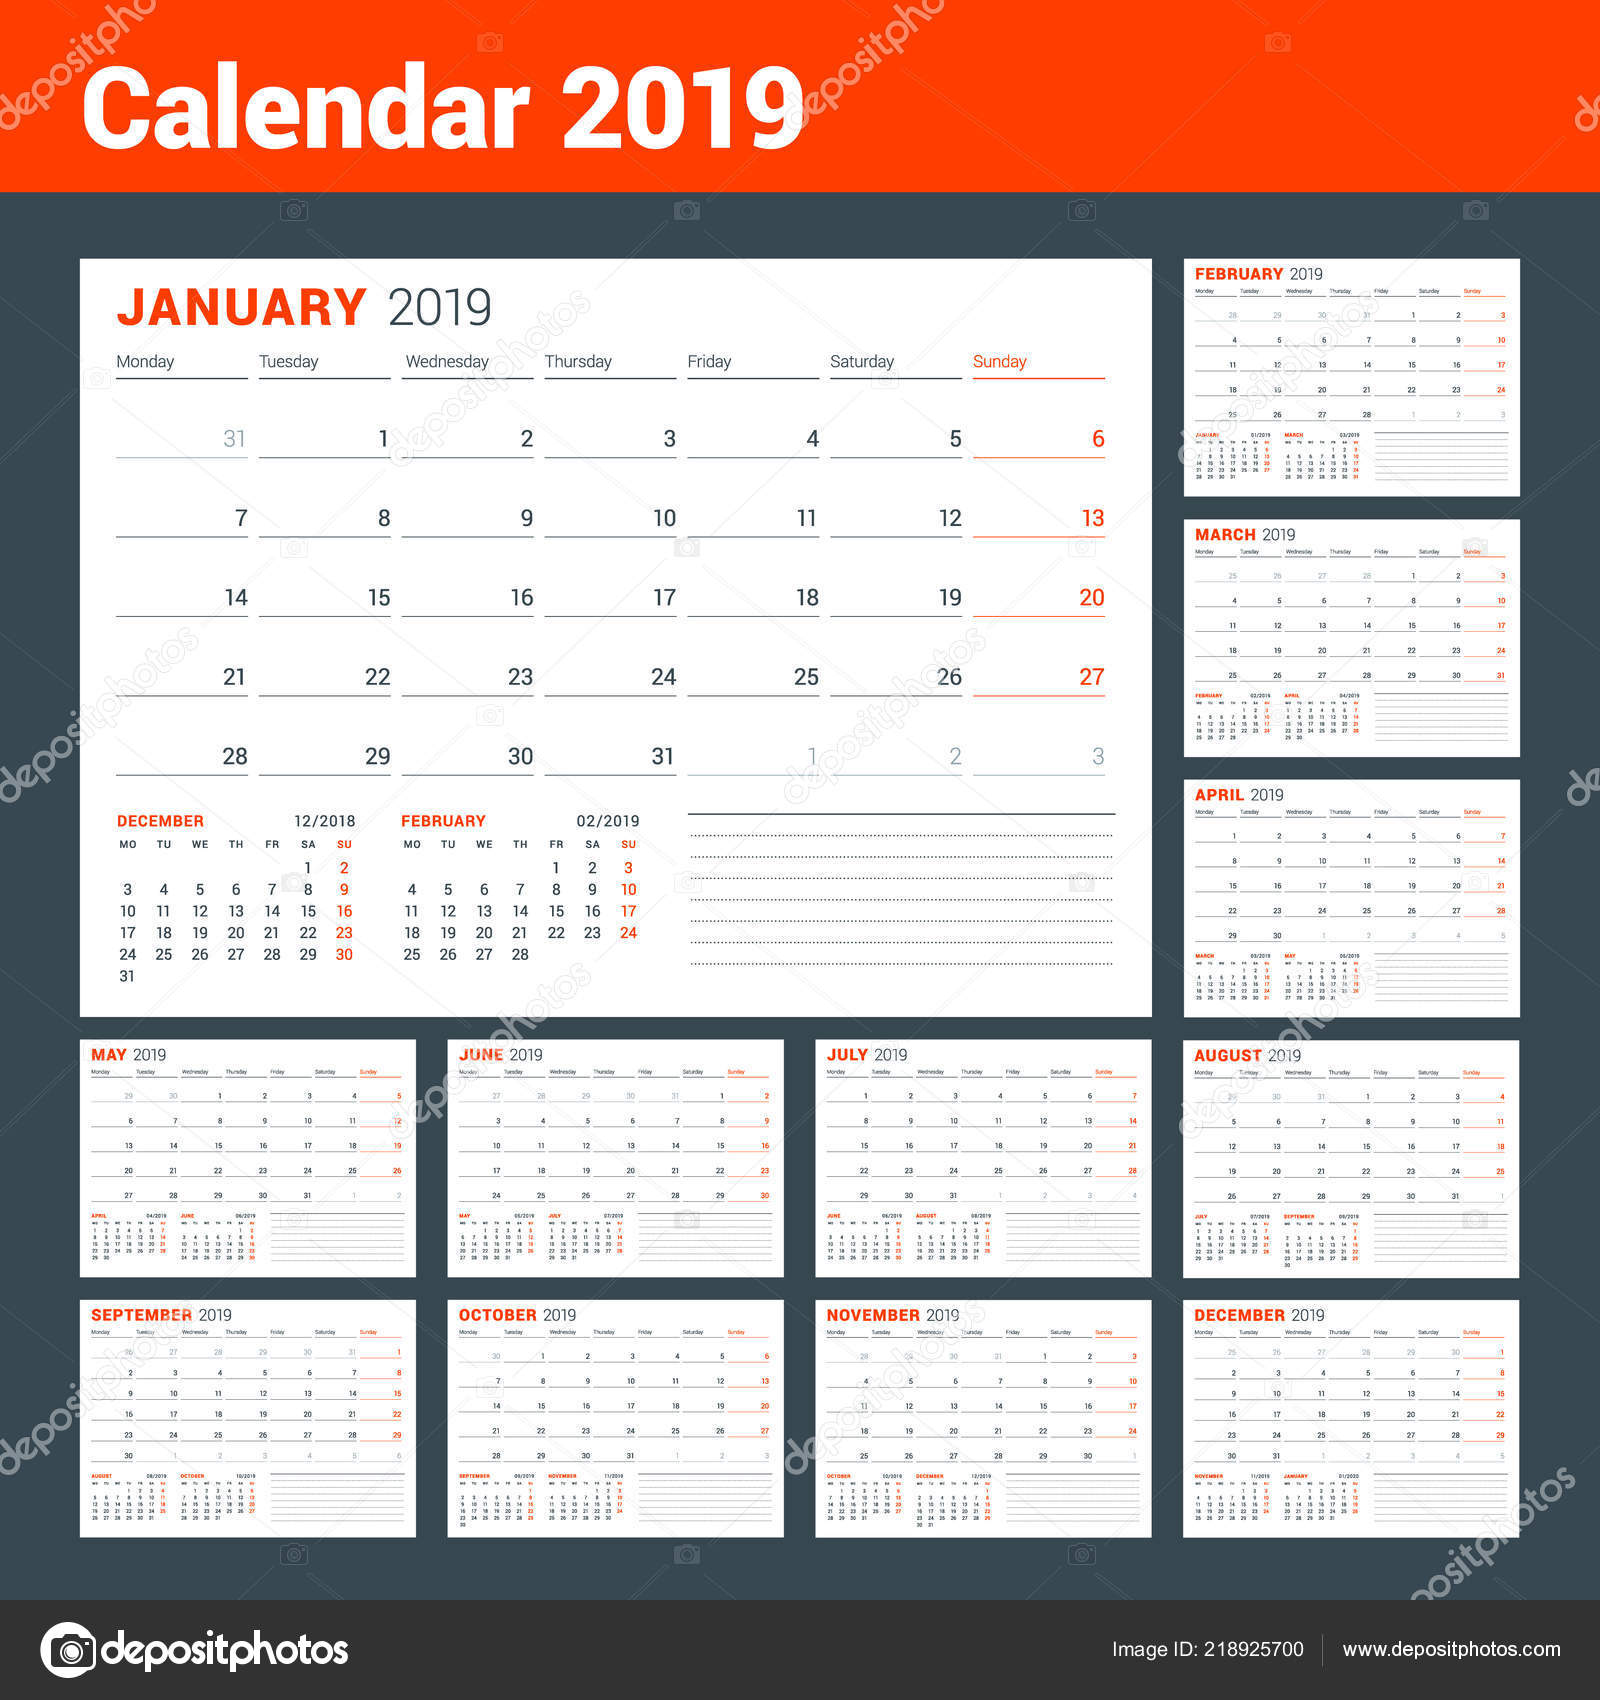 Calendar Template 2019 Year Business Planner Stationery Design Week